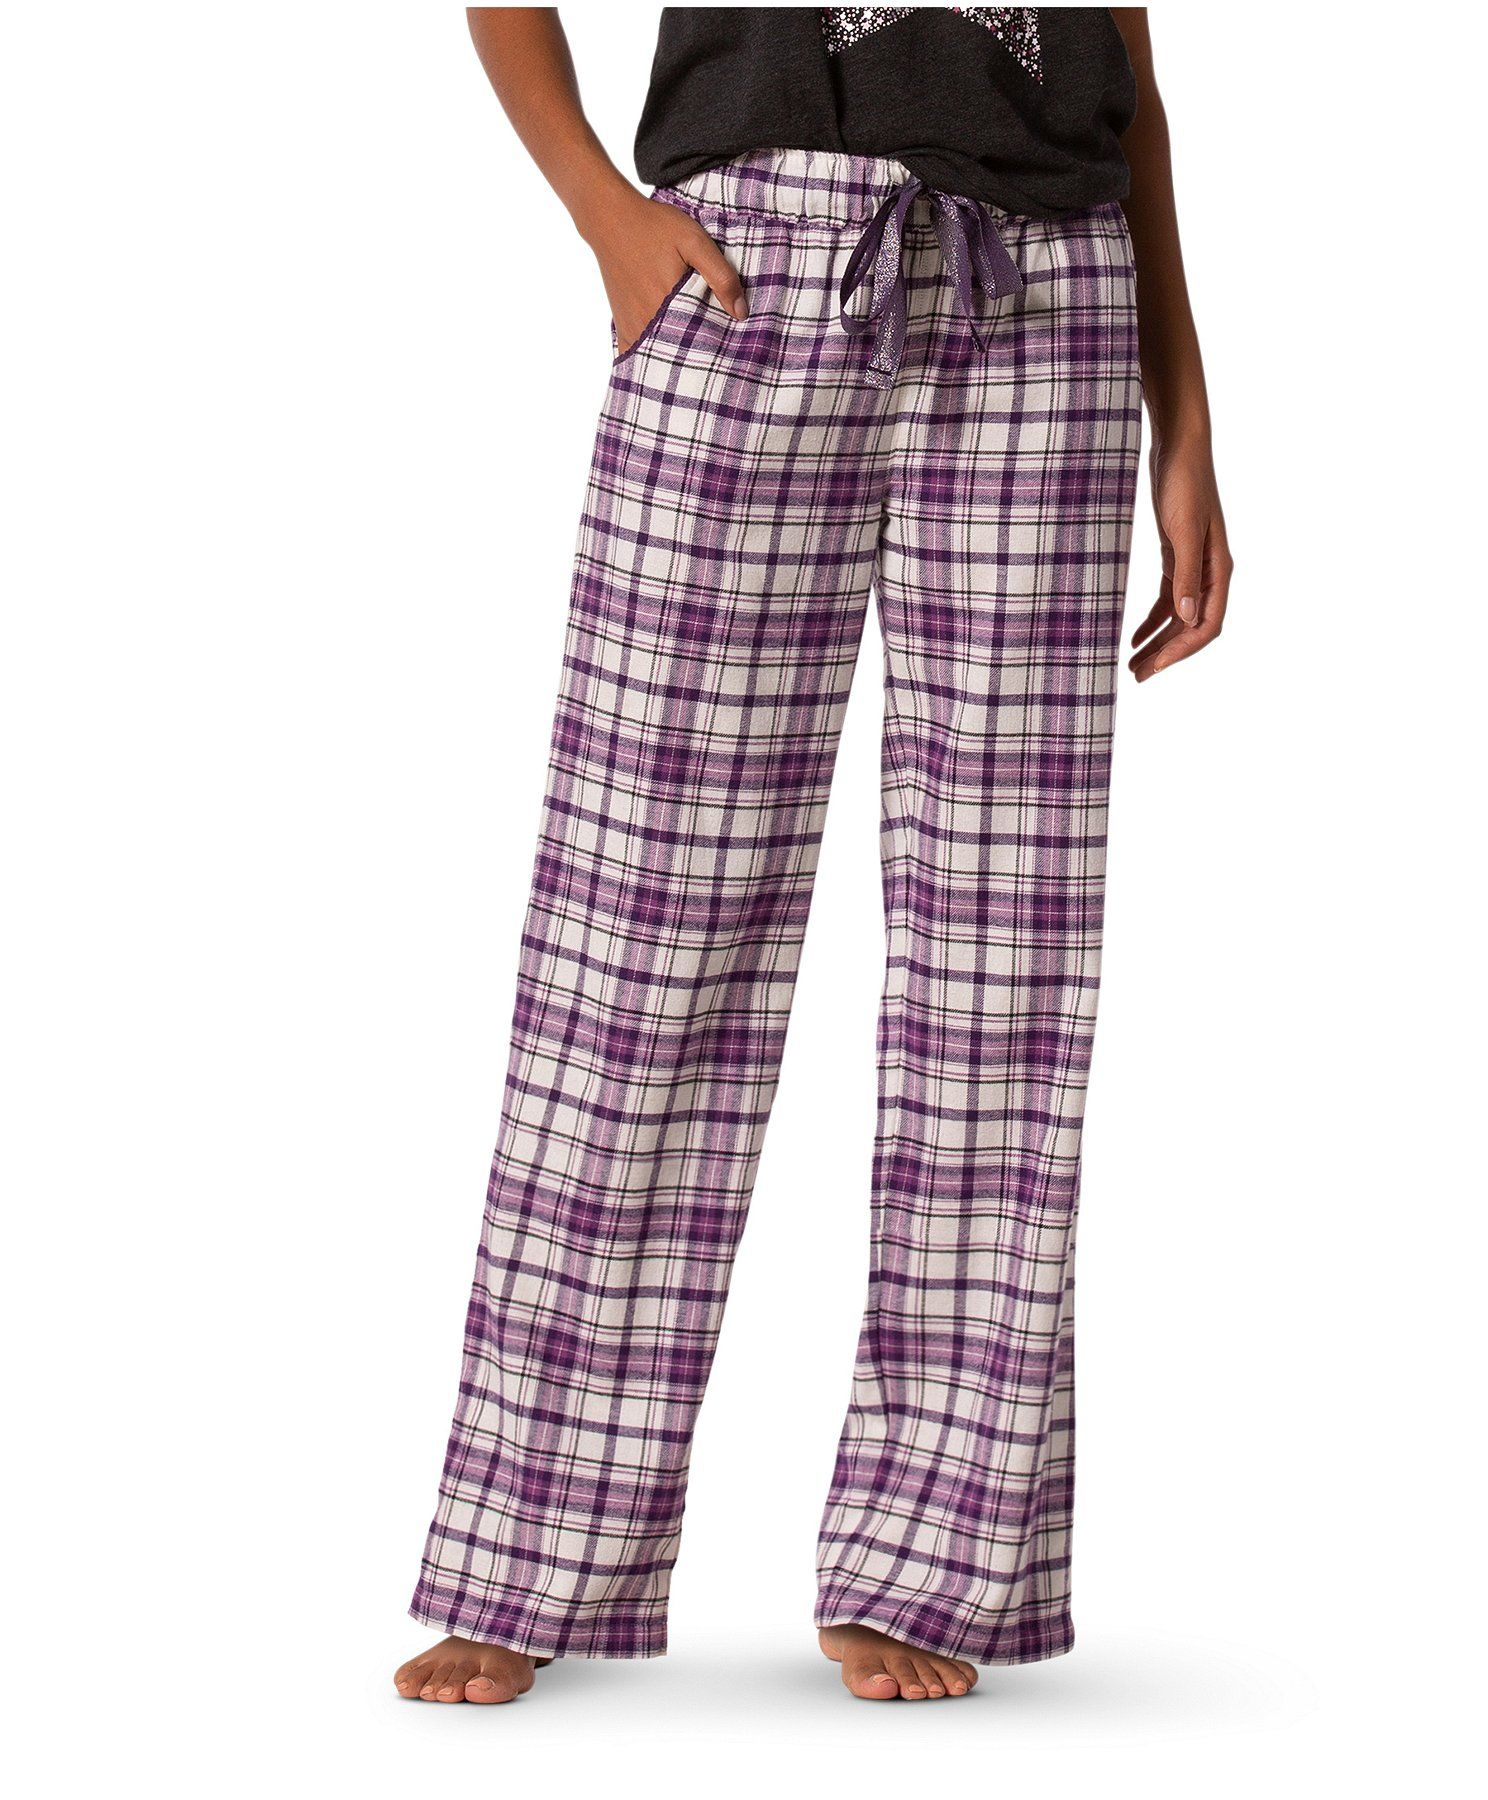 652ae75c7e06c  30 Mark s Denver Hayes Flannel Pajama Pant